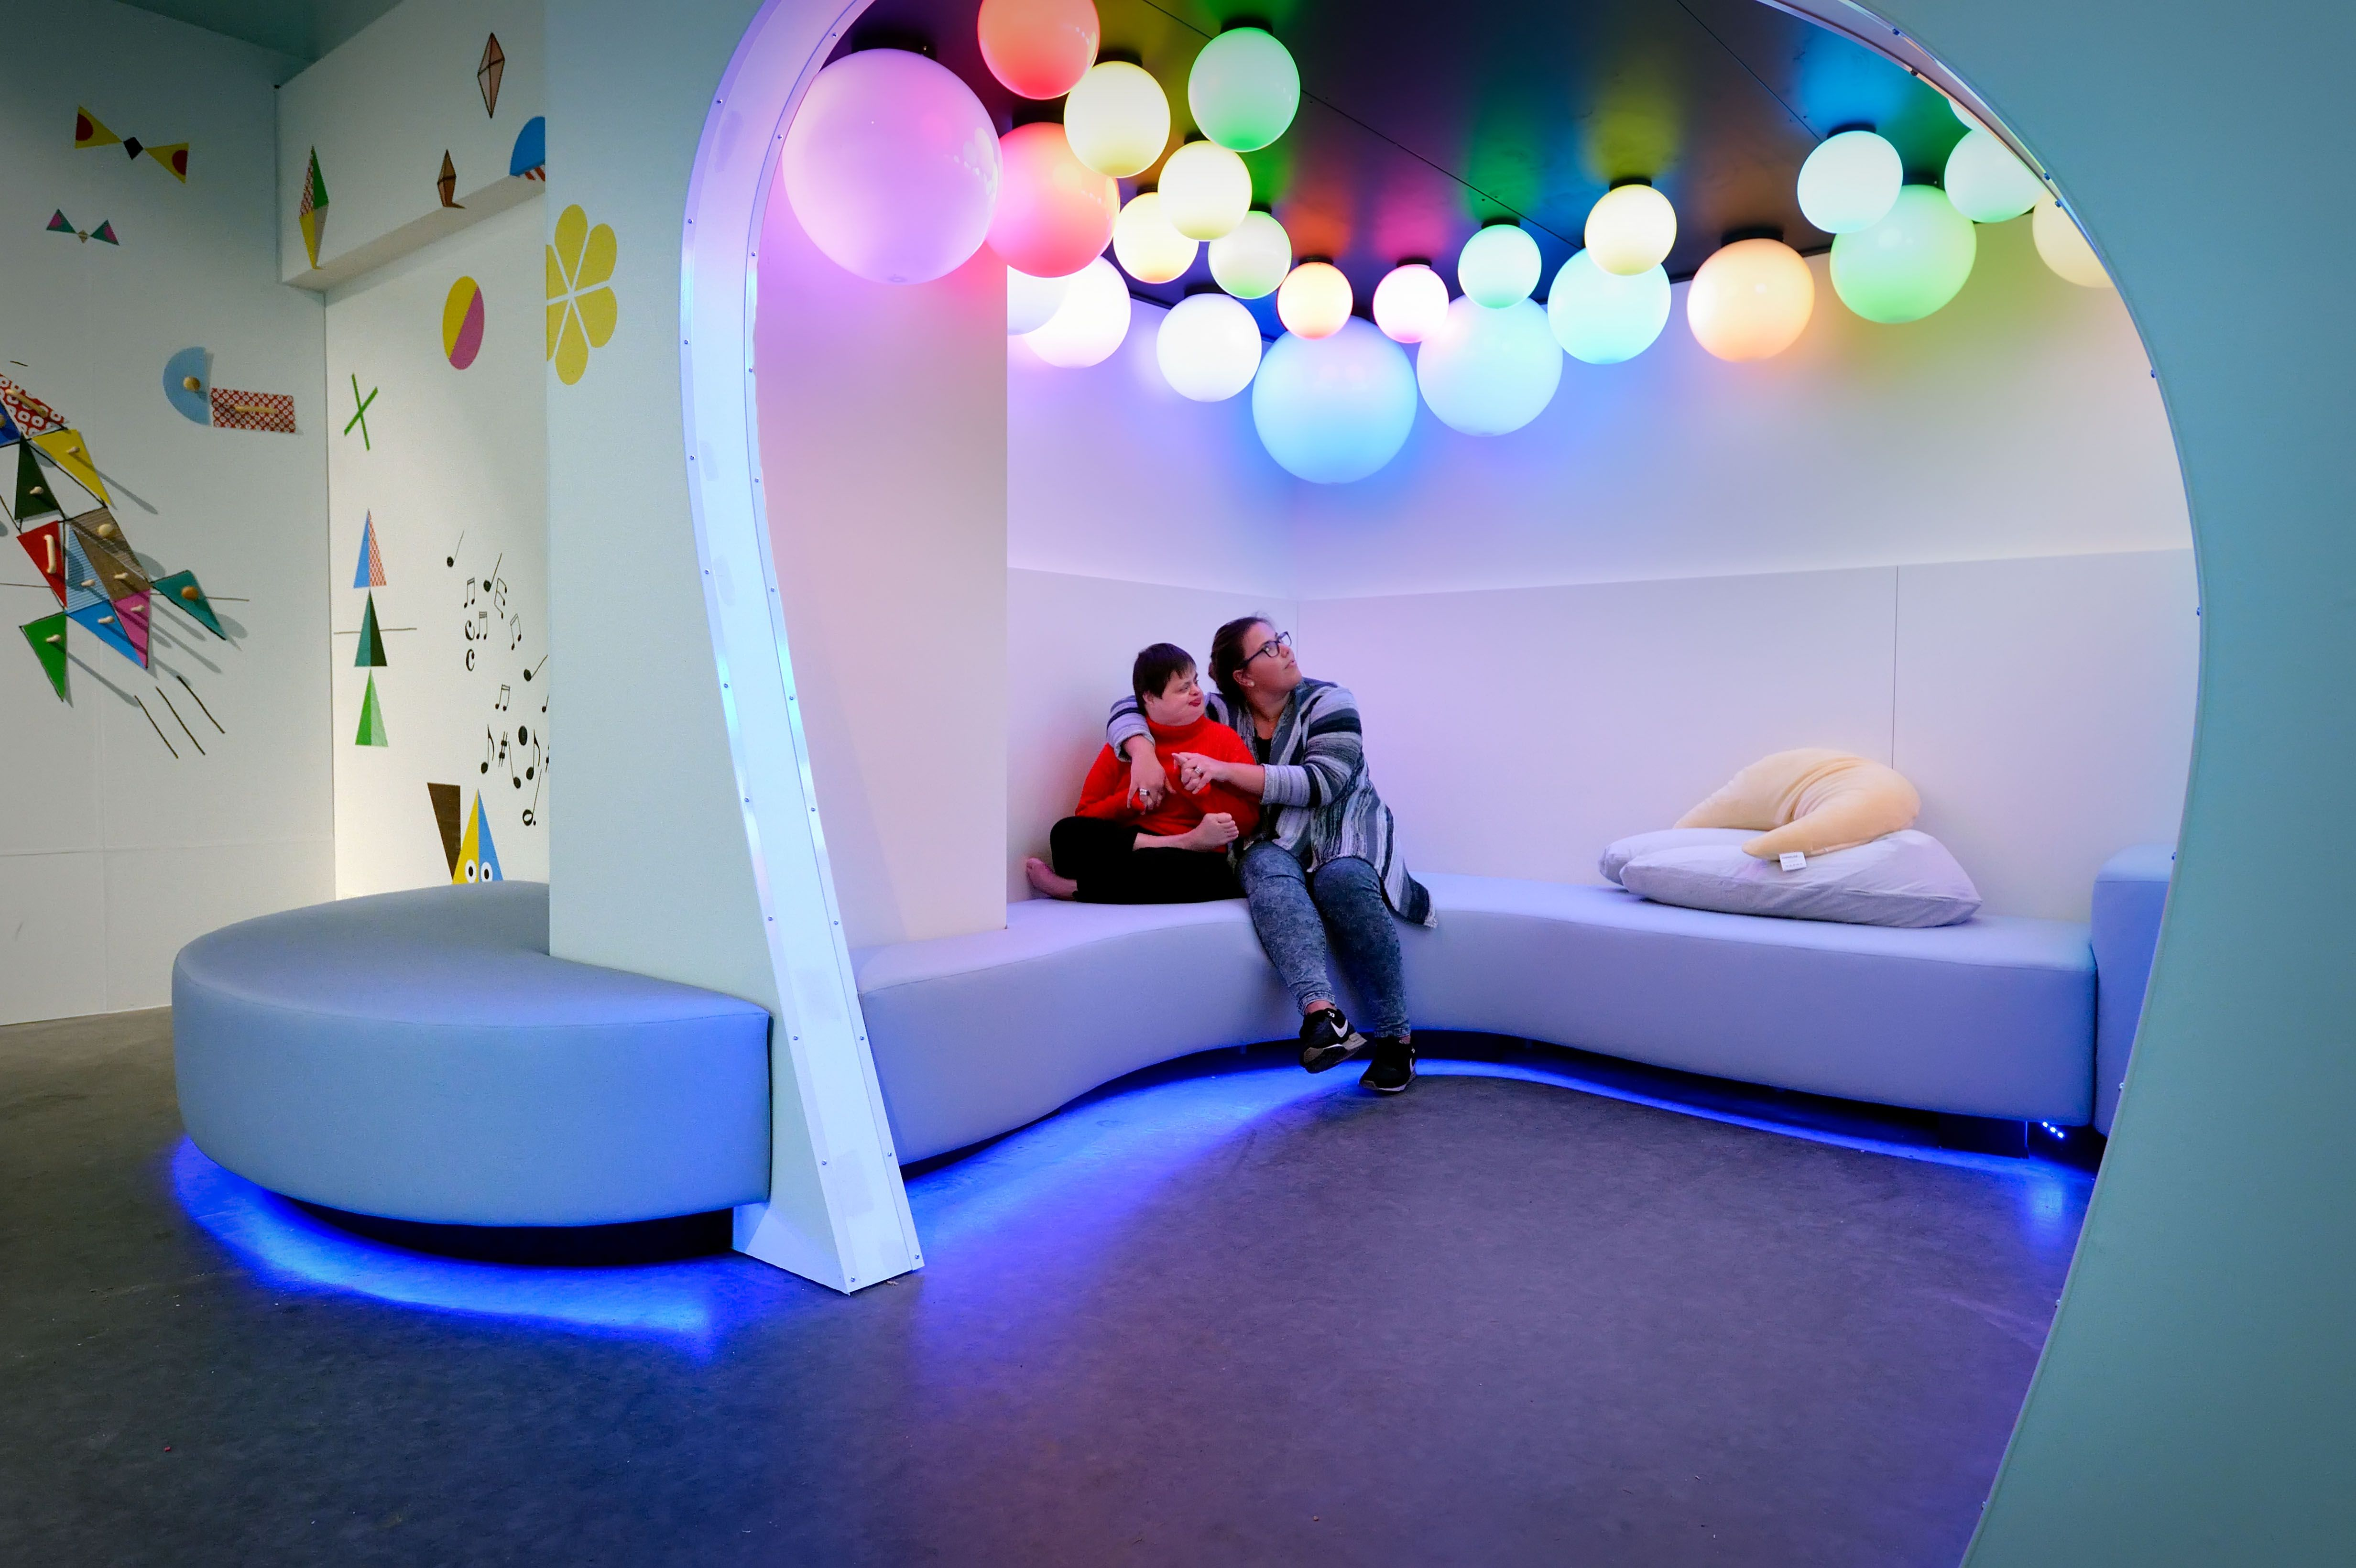 The New Experience in Arnhem for multi disable people offers an inspiring adventure based on all kinds of sensory stimulation: light, sound, colour, movement, the element of play. Photography (c) Mike Bink.